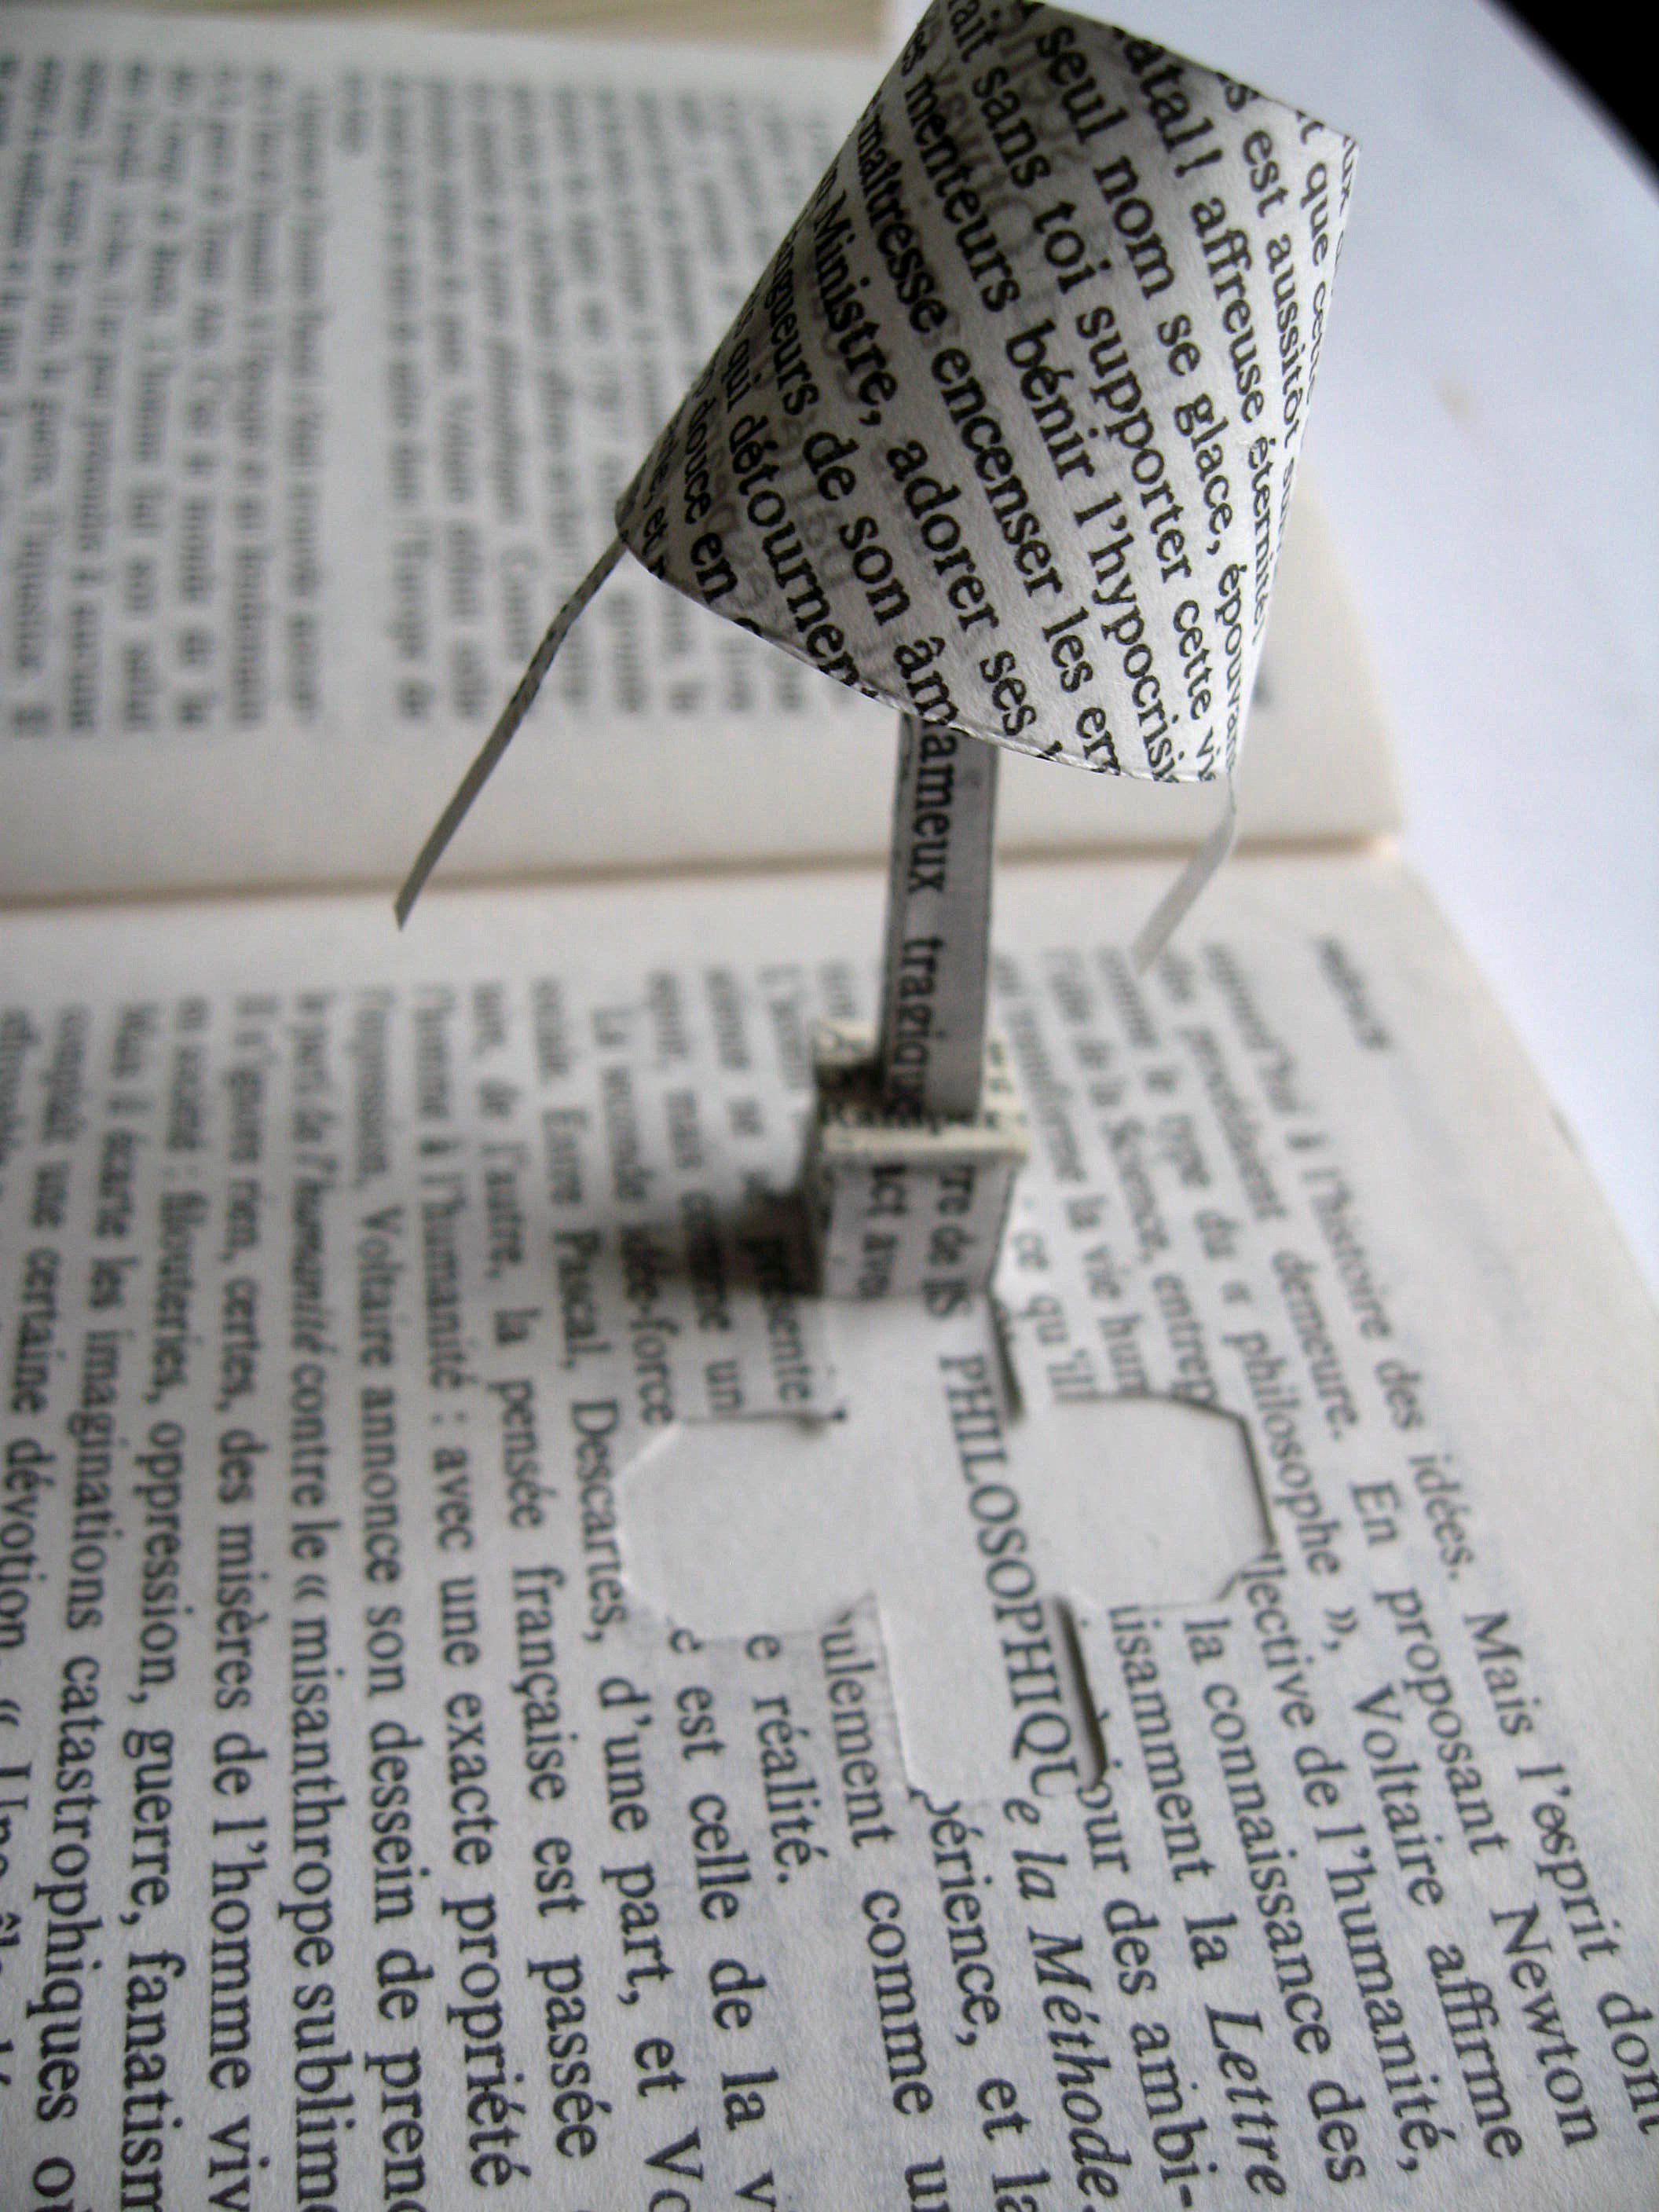 a few words, altered book, lamp